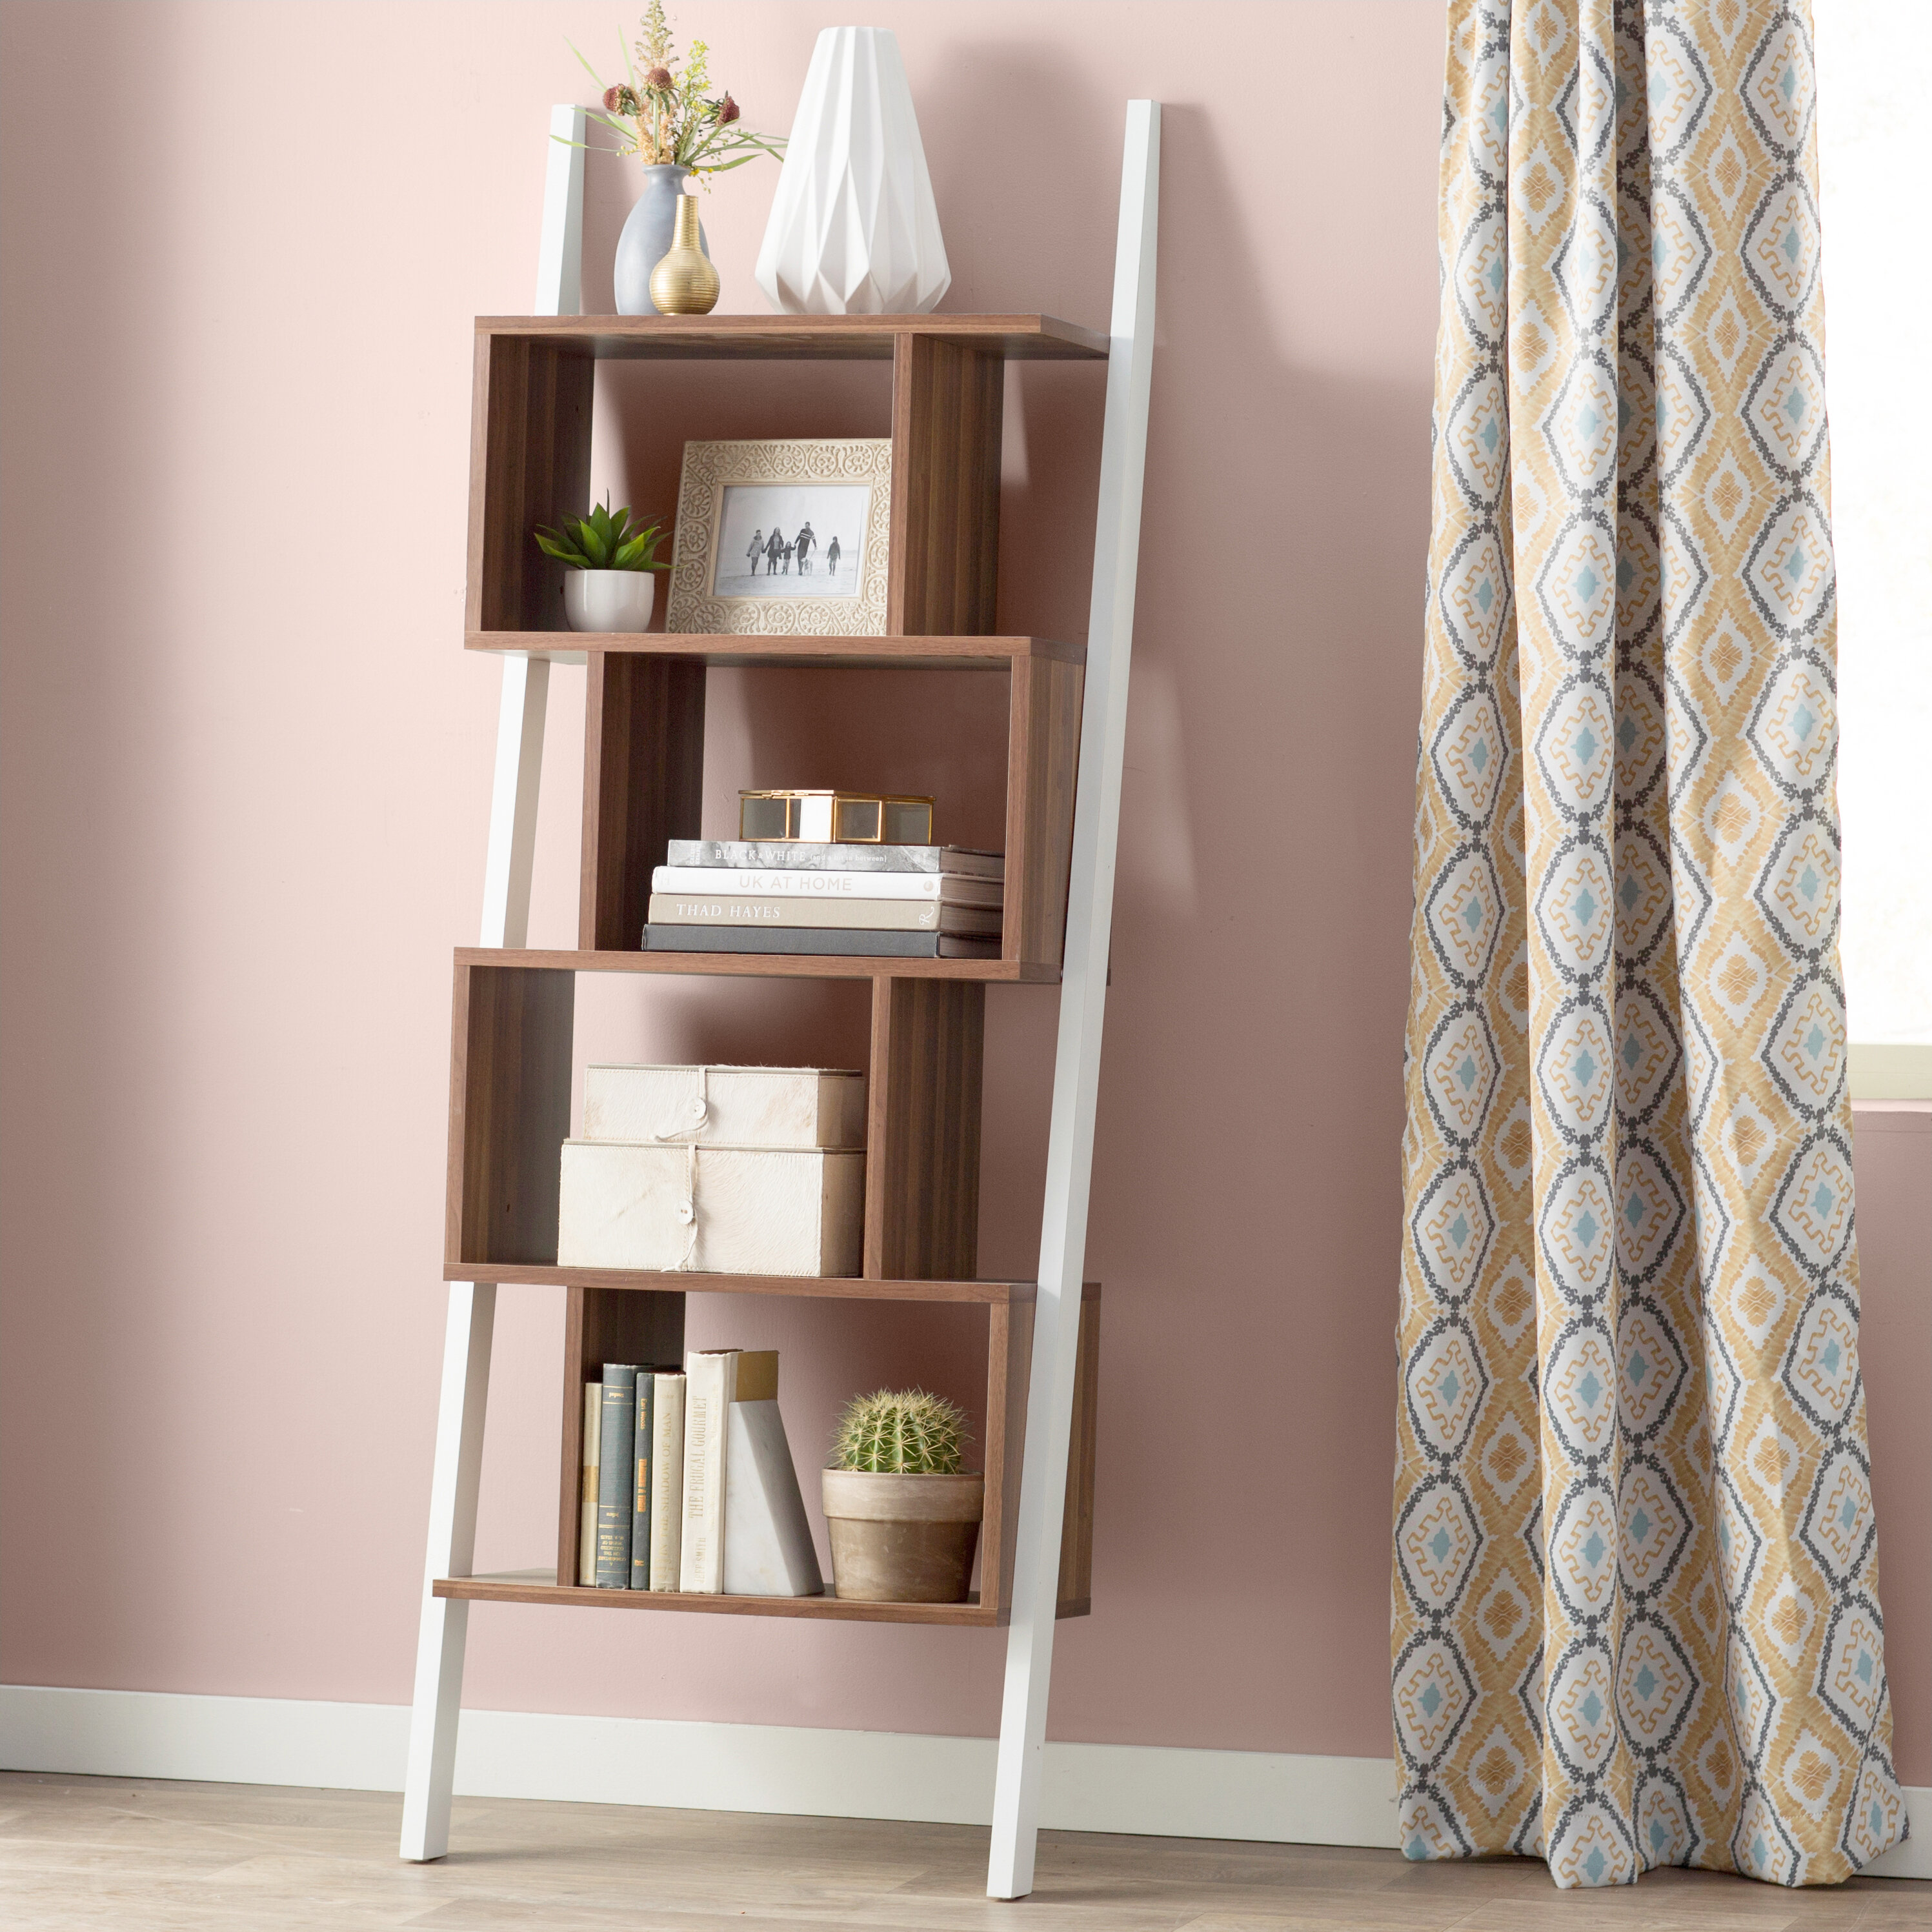 shelving ladder shelf pictures oak winsome units size prevnext leaning appealing wall storage full shelves